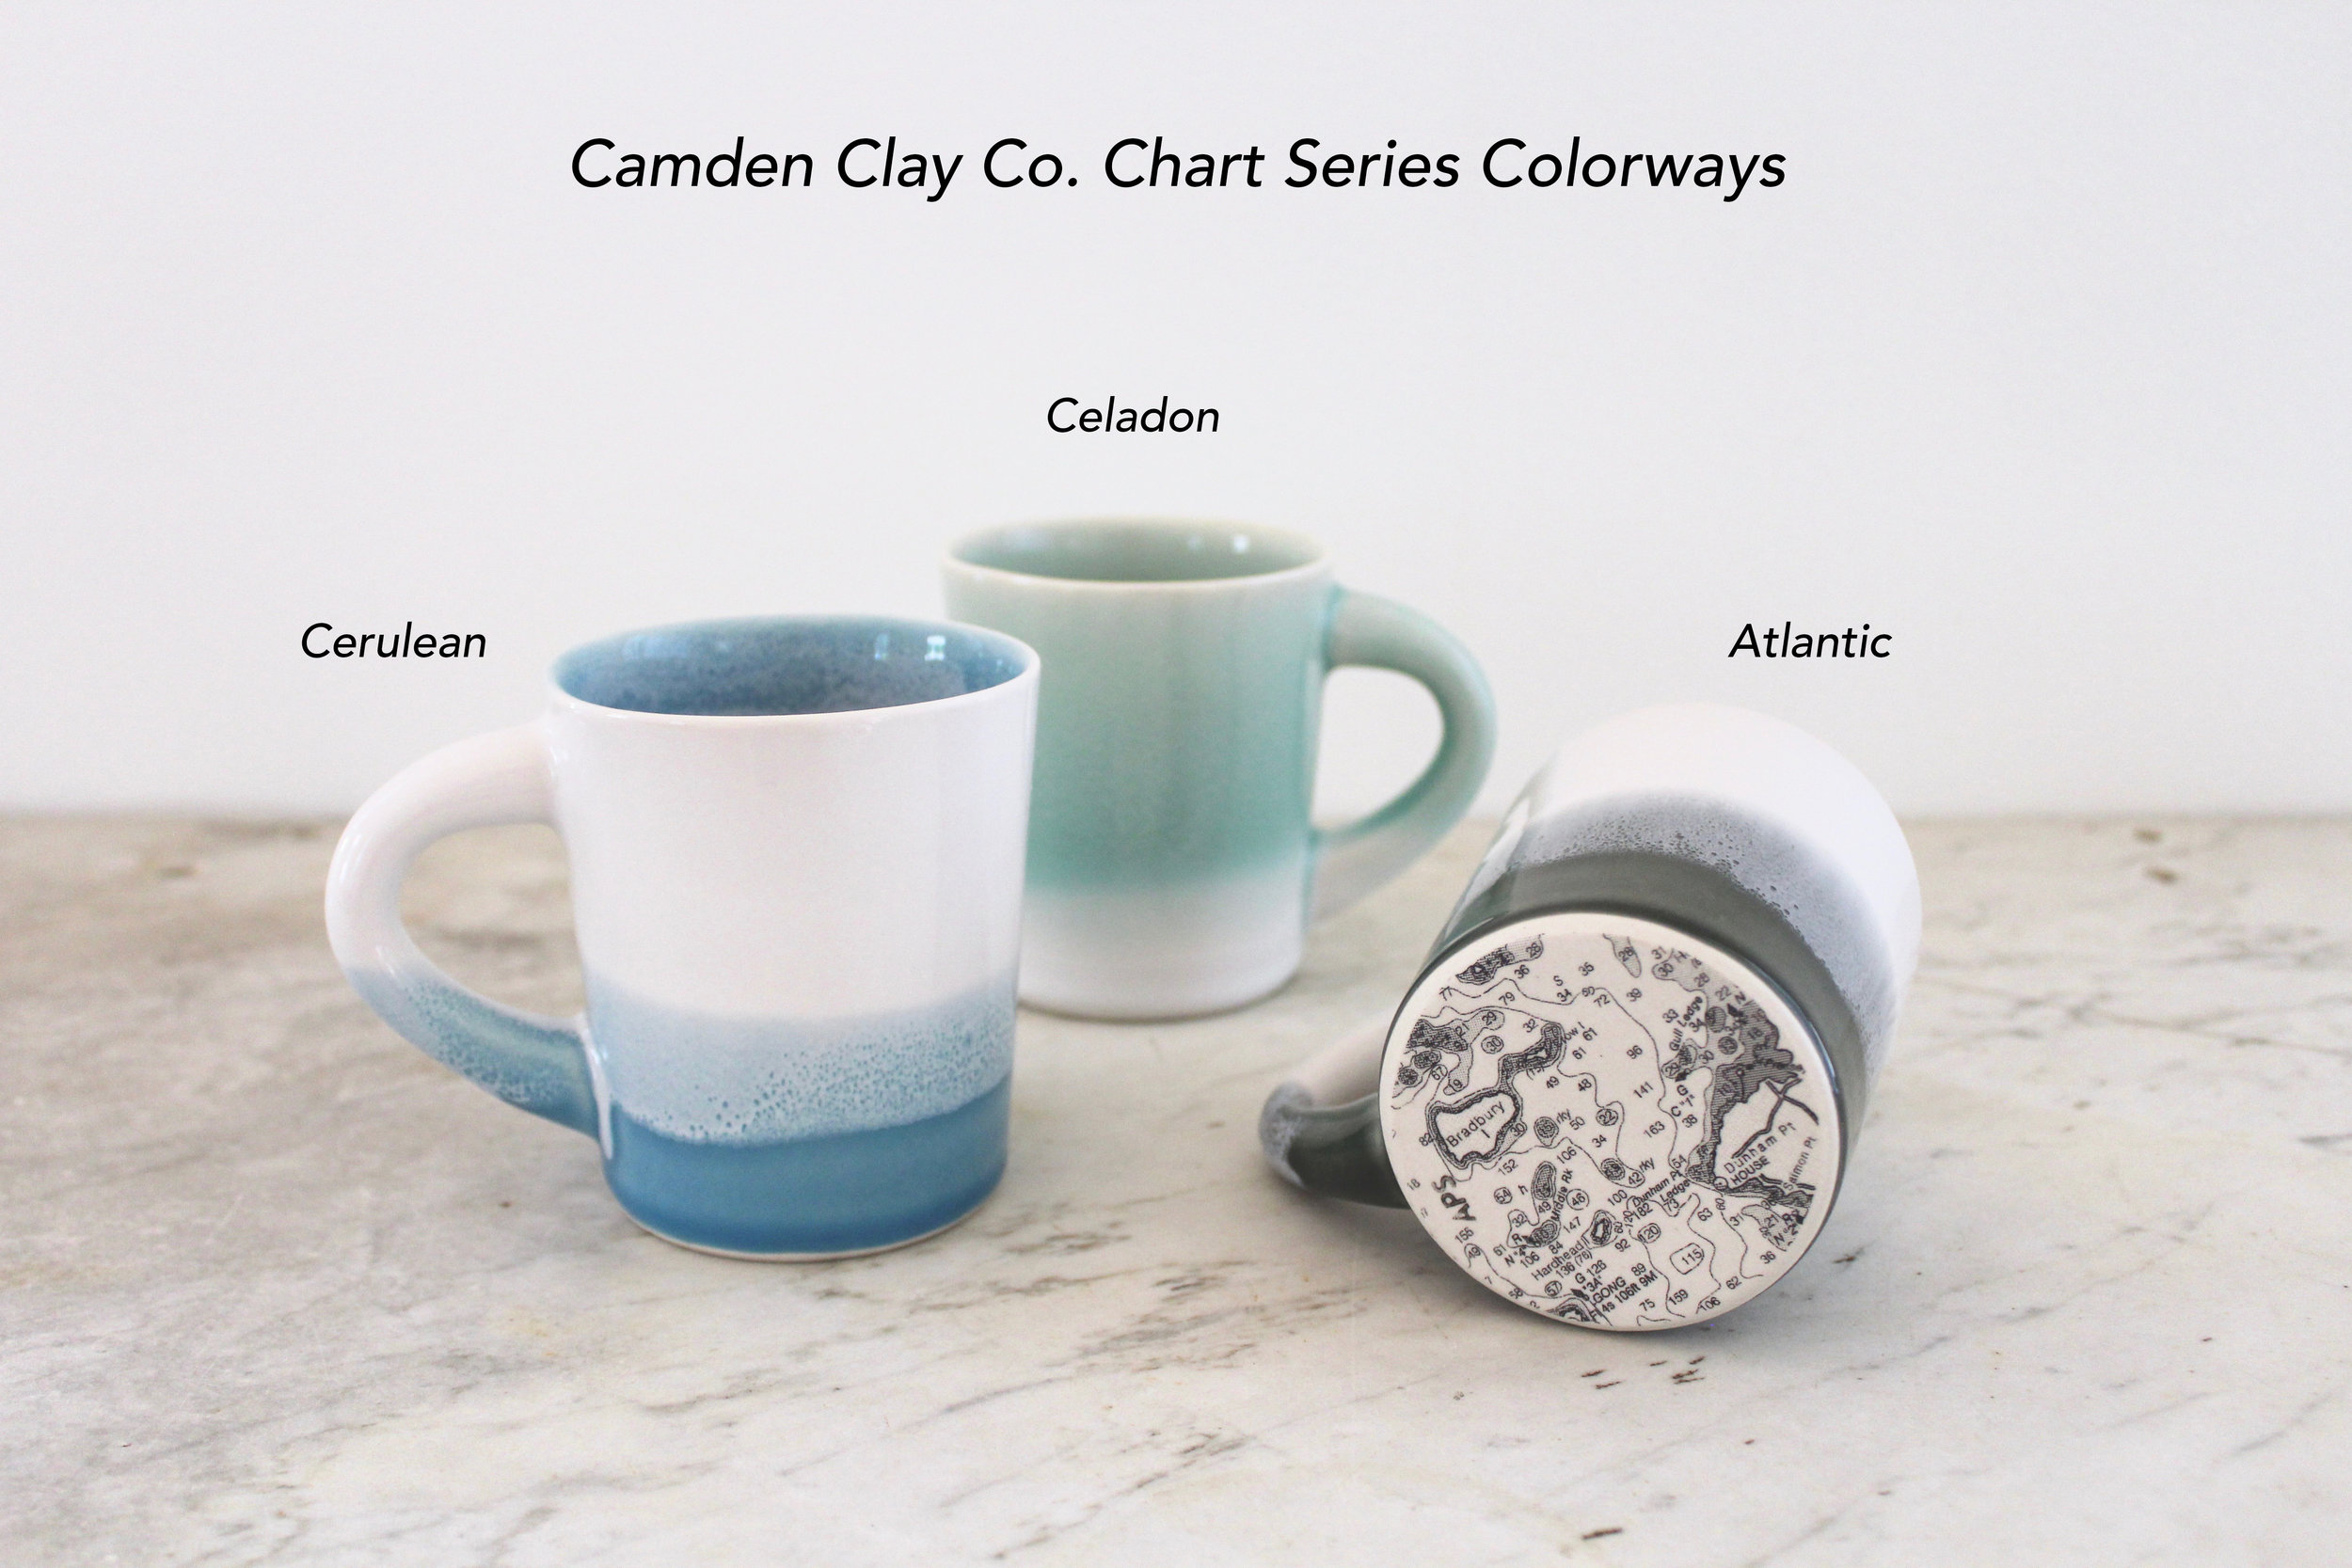 Camden Clay Co. Chart Series Colorways